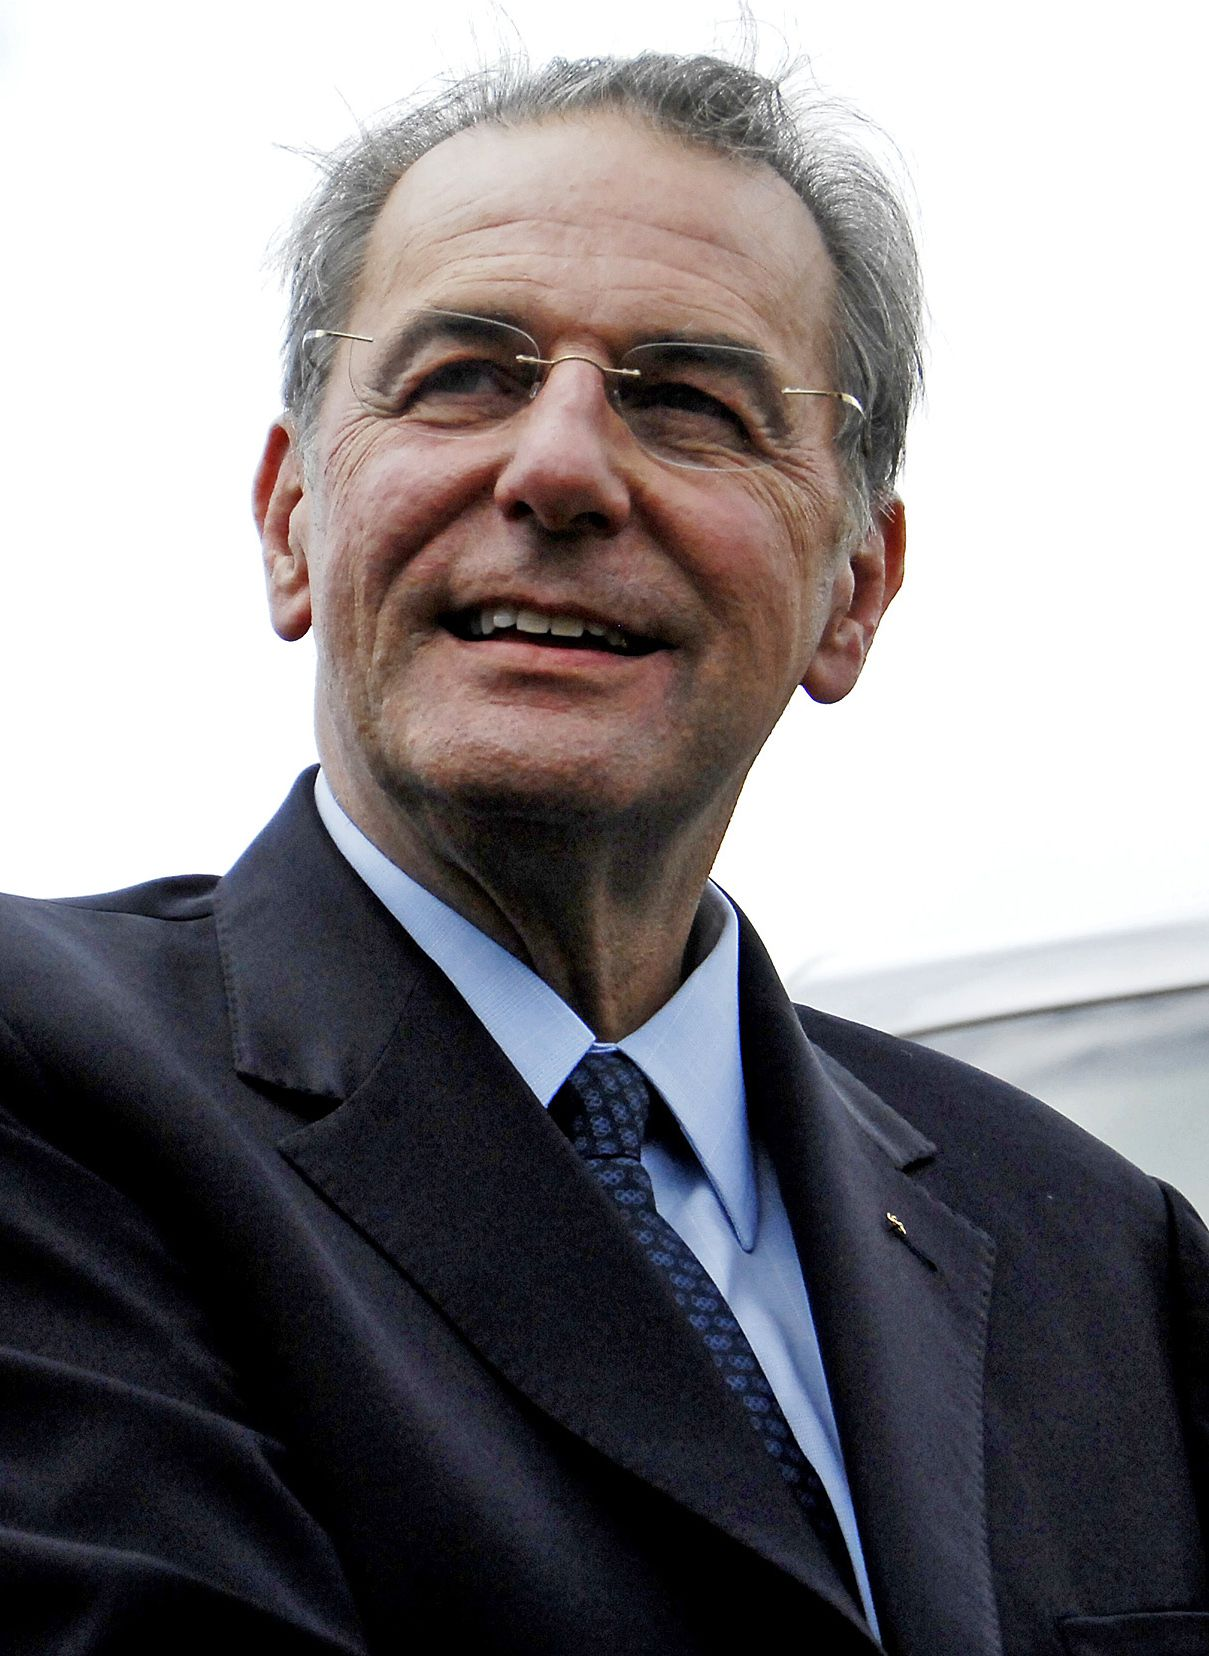 Jacques Rogge. Foto AP Belgium's Jacques Rogge, President of the International Olympic Committee (IOC), smiles during a visit to Warren, Barbados, Tuesday, March 18, 2008. Rogge is visiting several Caribbean islands. (AP Photo/Chris Brandis)